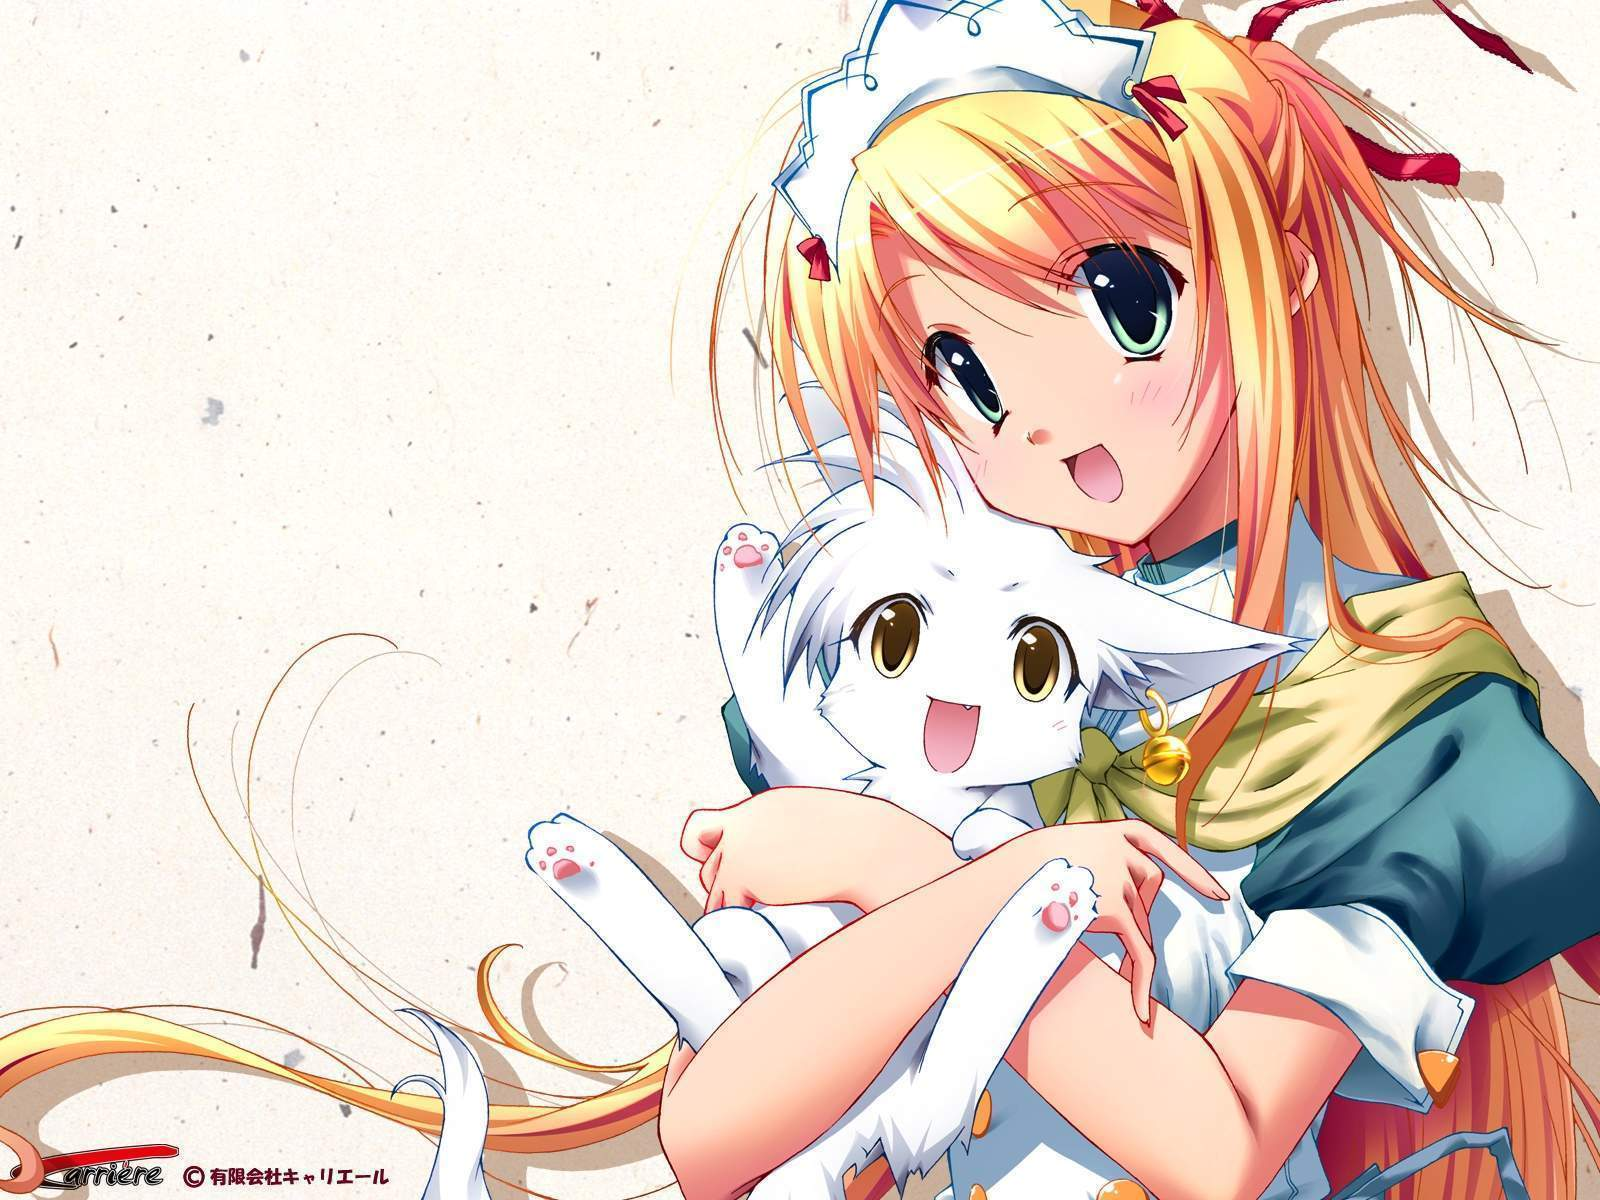 Cute Anime Cat Girl Home Gallery Anime Girls Wallpapers